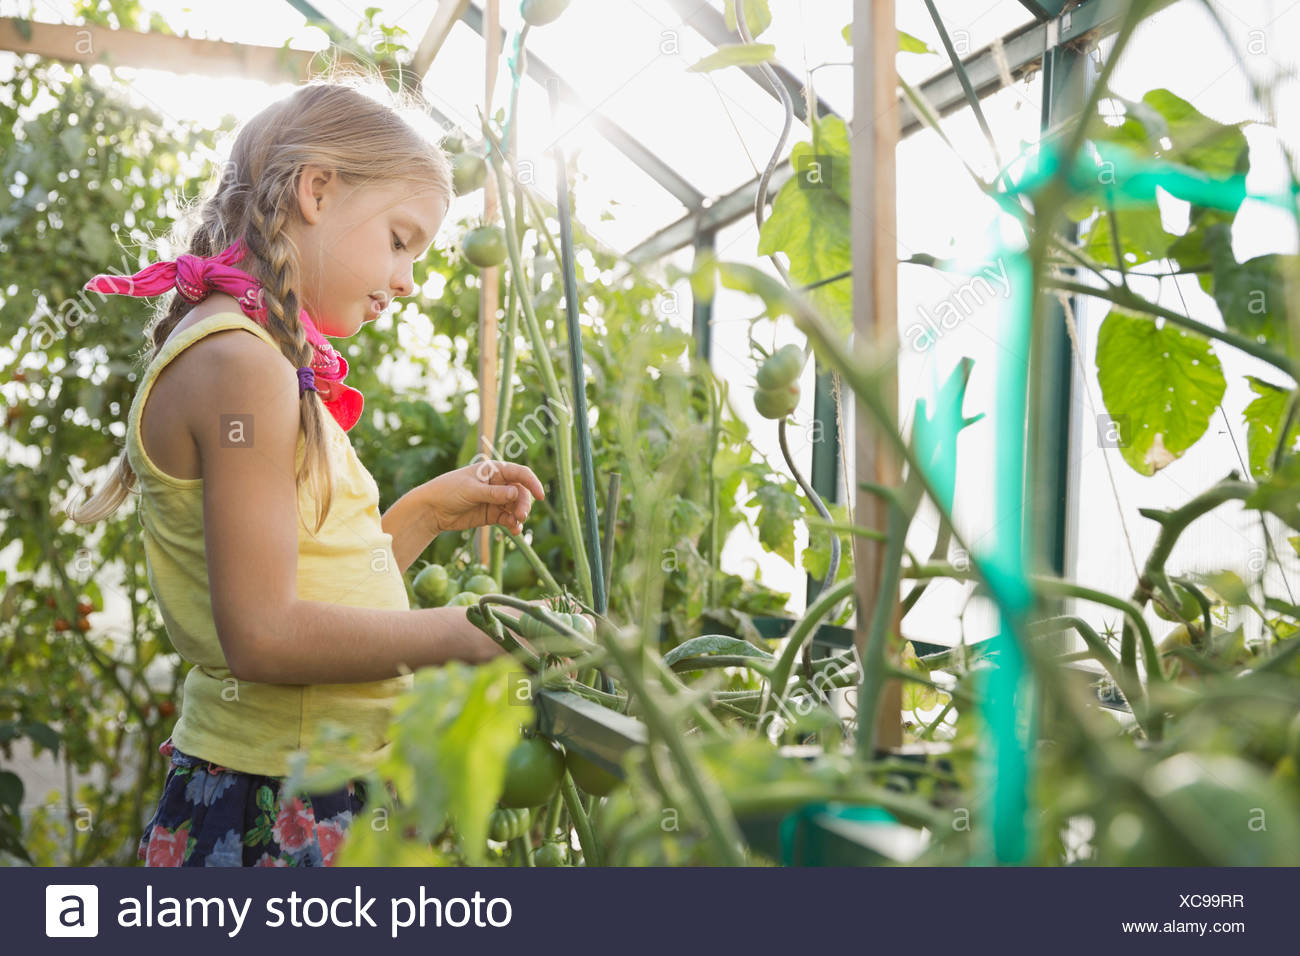 Side view of girl analyzing plants in greenhouse - Stock Image